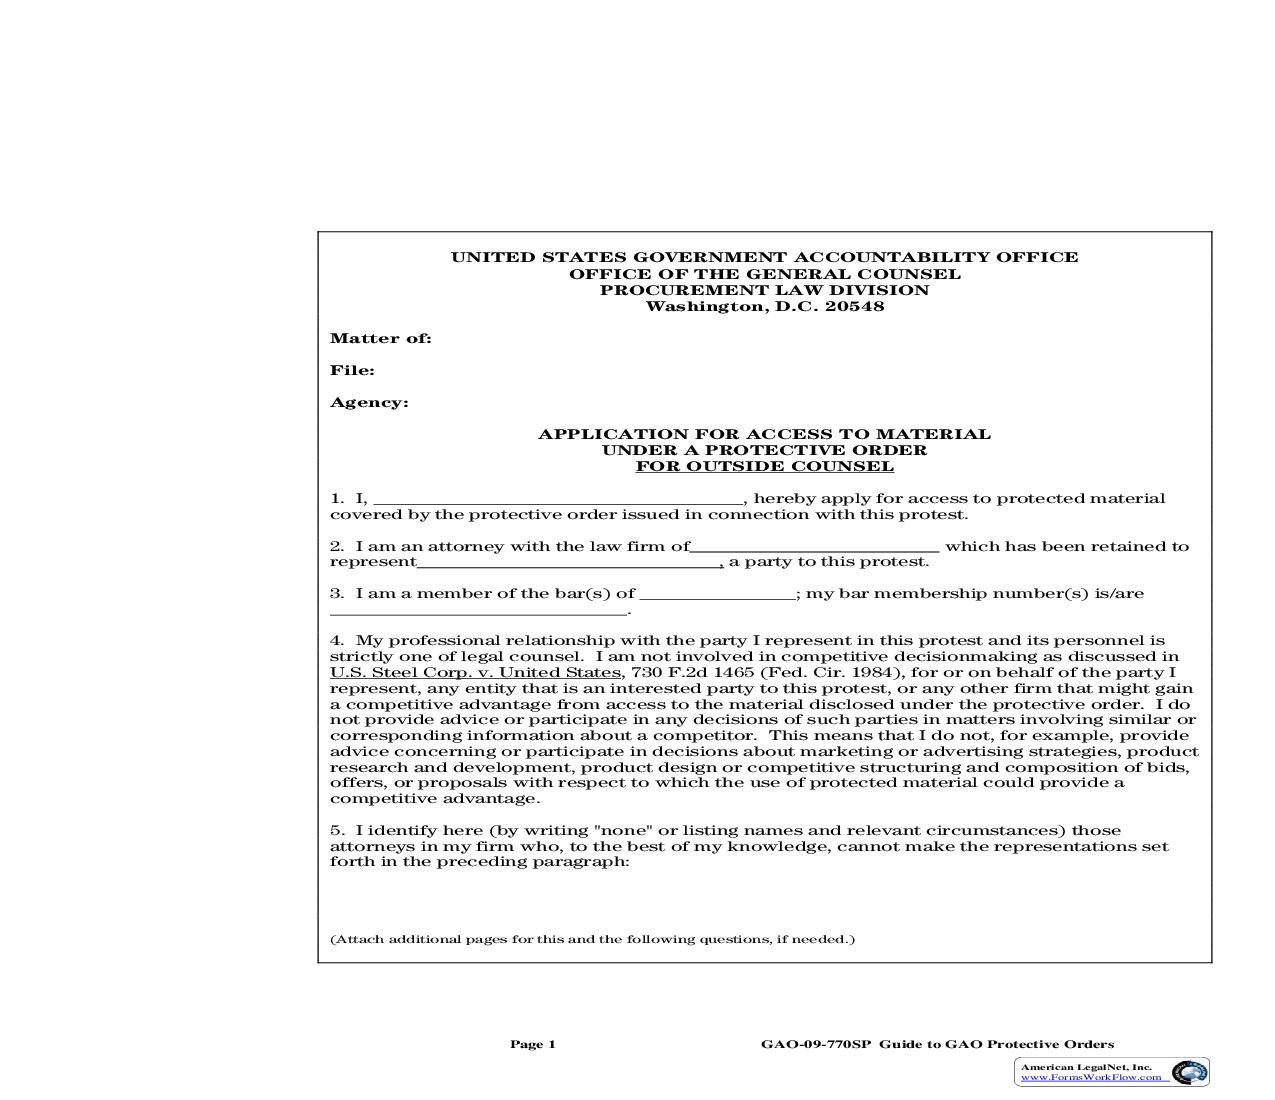 Application For Access To Material Under A Protective Order (Outside Counsel) {GAO-09-770SP} | Pdf Fpdf Doc Docx | Official Federal Forms